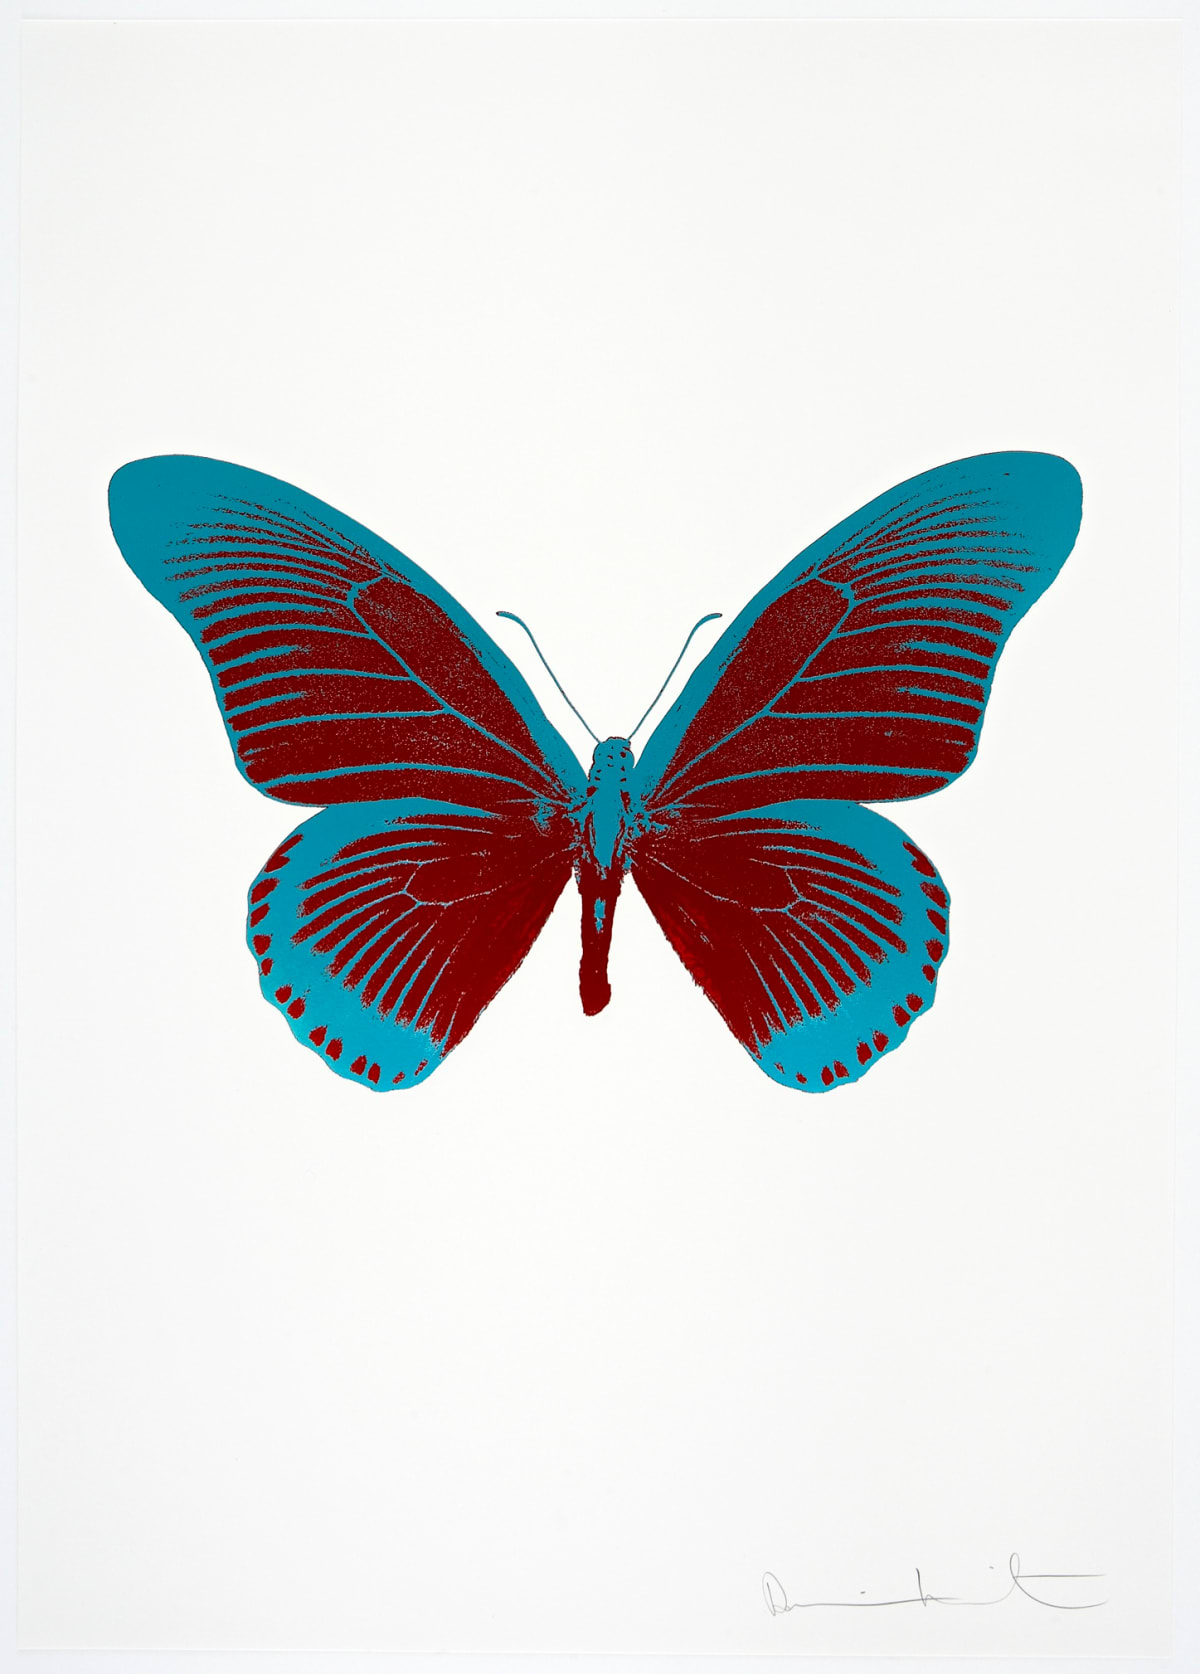 Damien Hirst The Souls IV - Chilli Red/Topaz Damien Hirst butterfly foil print for sale Damien Hirst print for sale , 2010 2 colour foil block on 300gsm Arches 88 archival paper. Signed and numbered. Published by Paul Stolper and Other Criteria 72 x 51cm OC8004 / 1418-27 Edition of 15